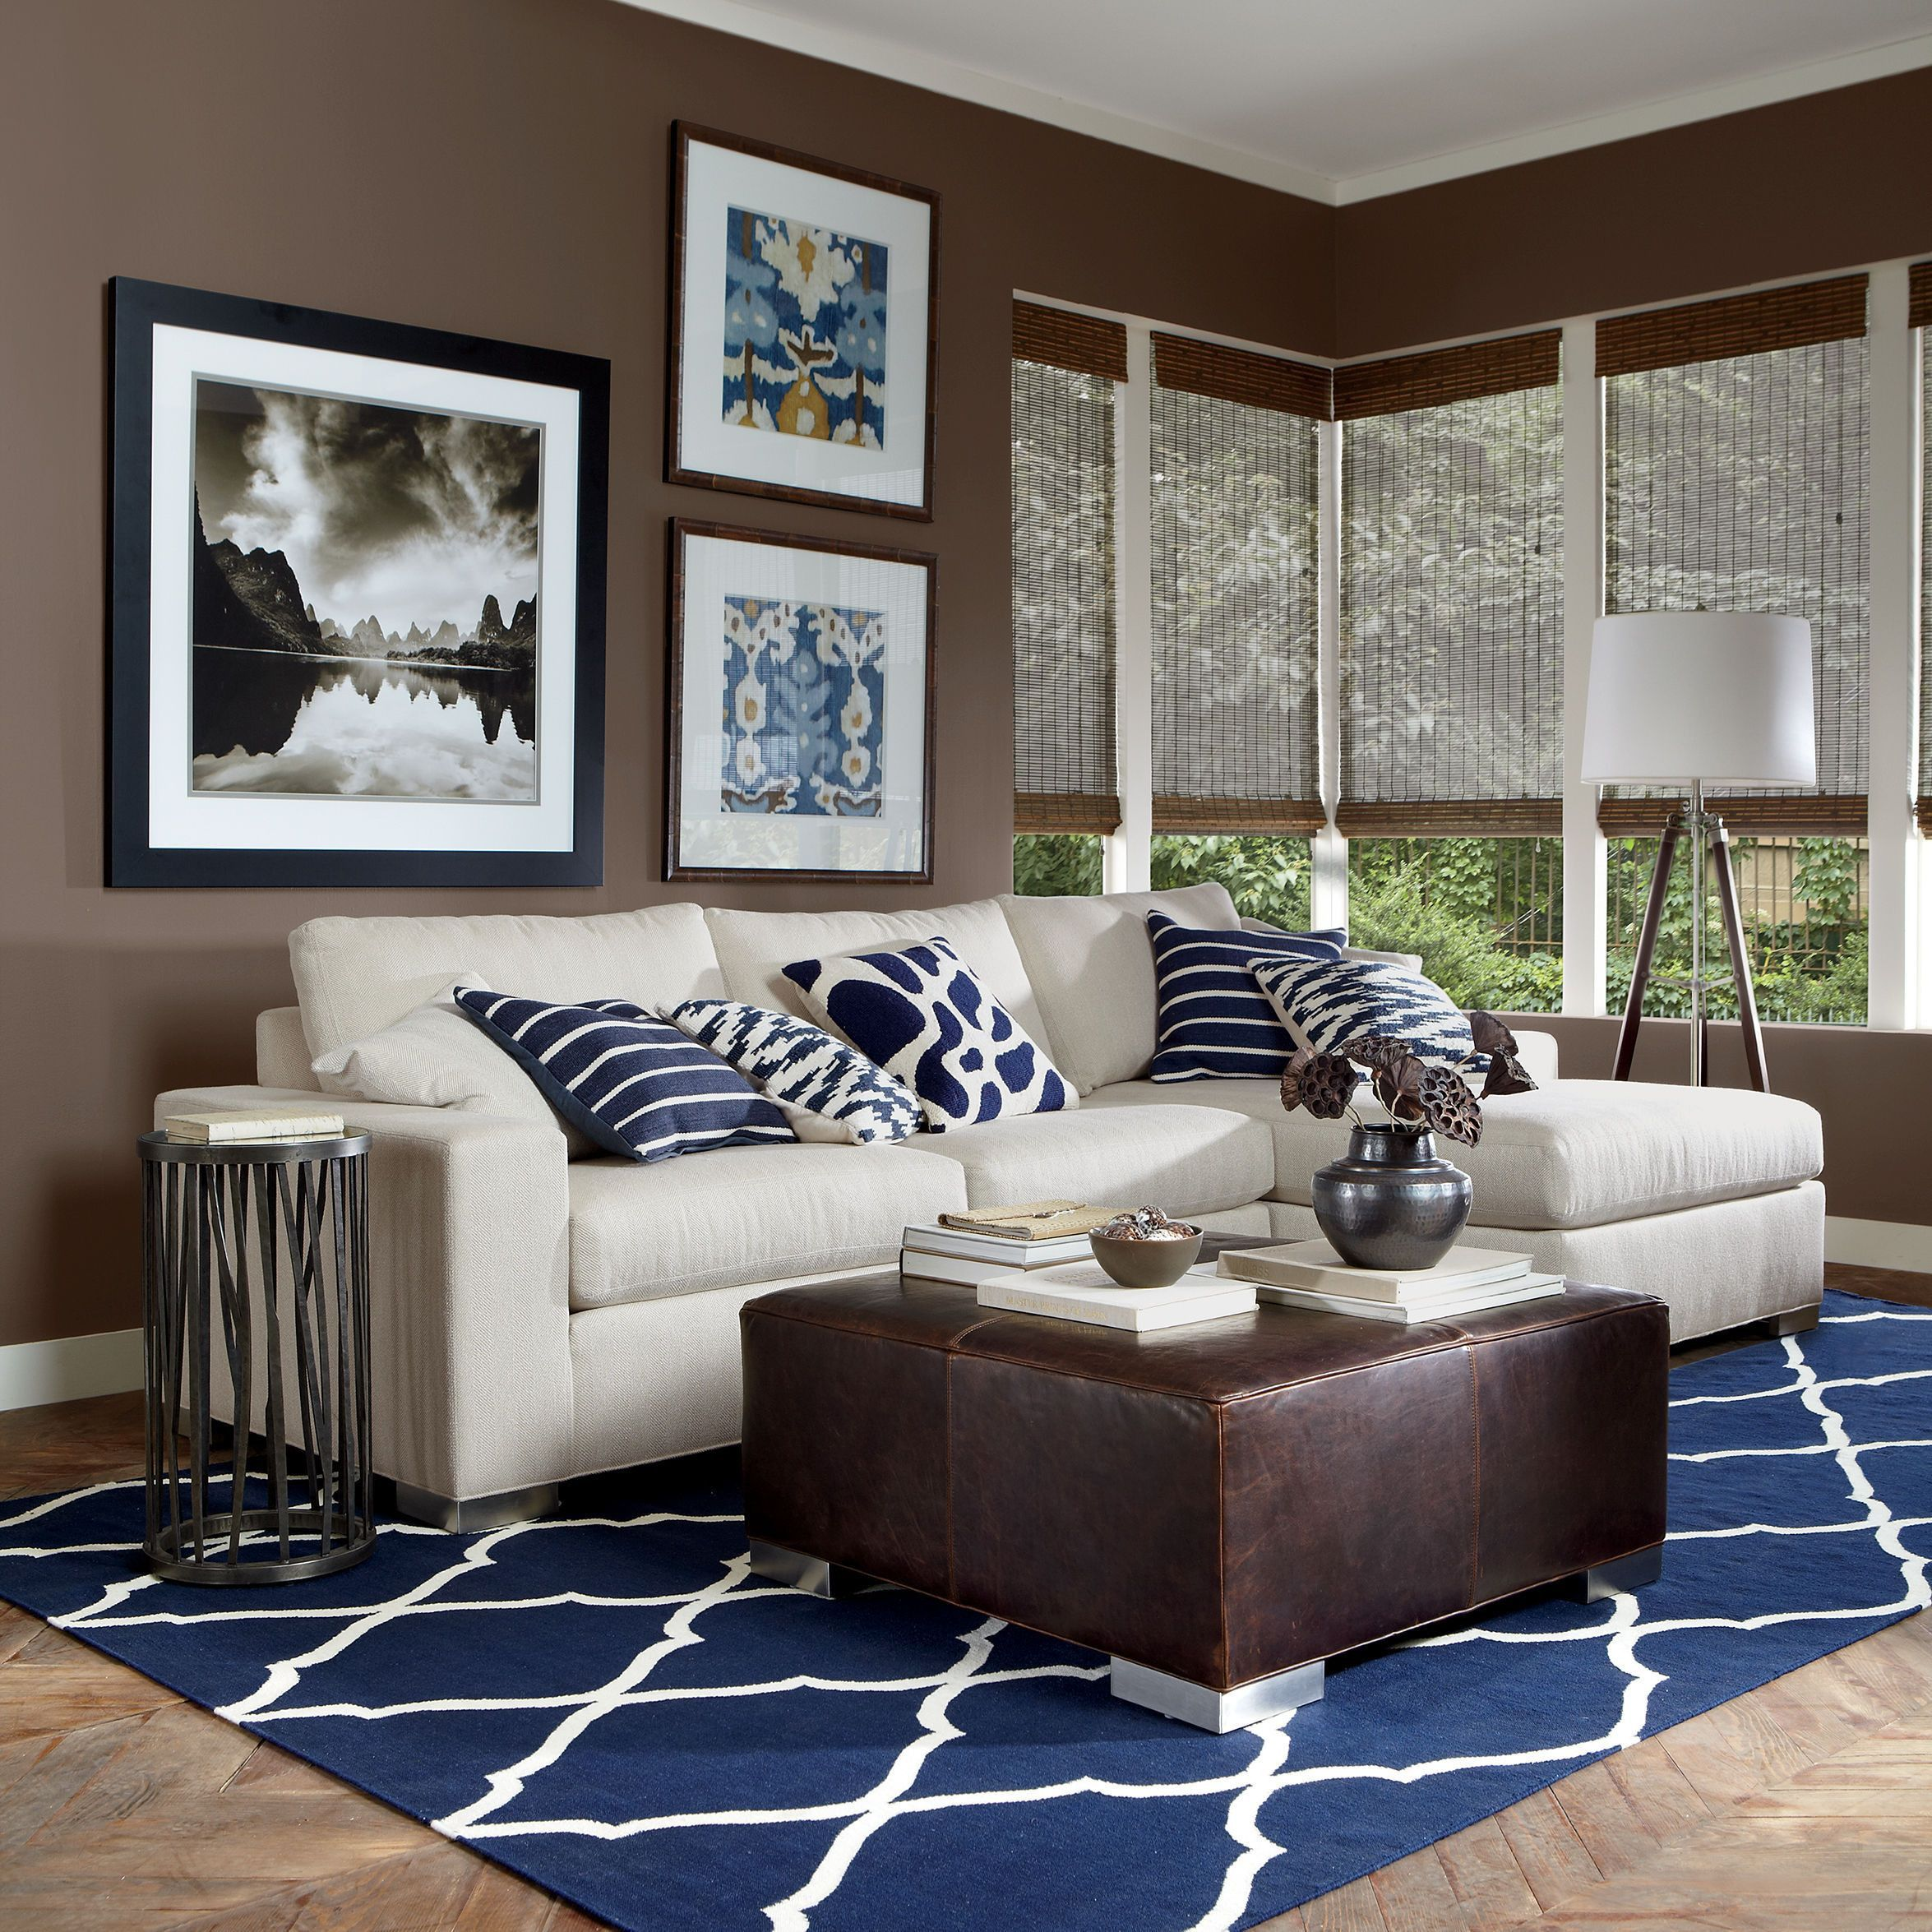 Image Result For Beige And Blue Living Room